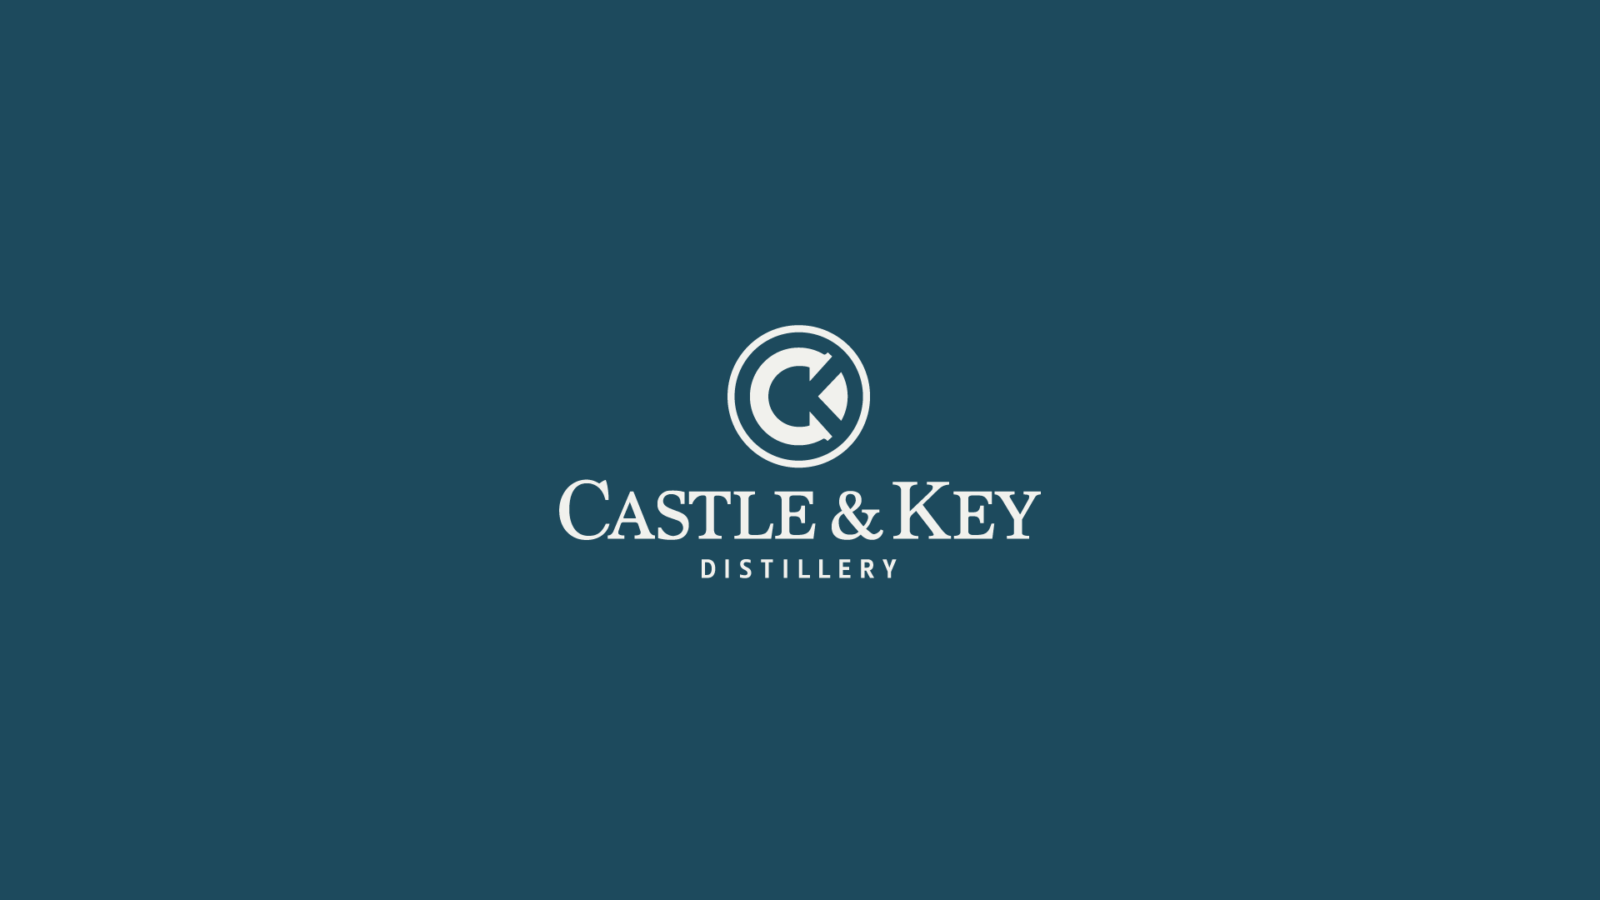 Castle & Key Distillery Visual Identity refinement